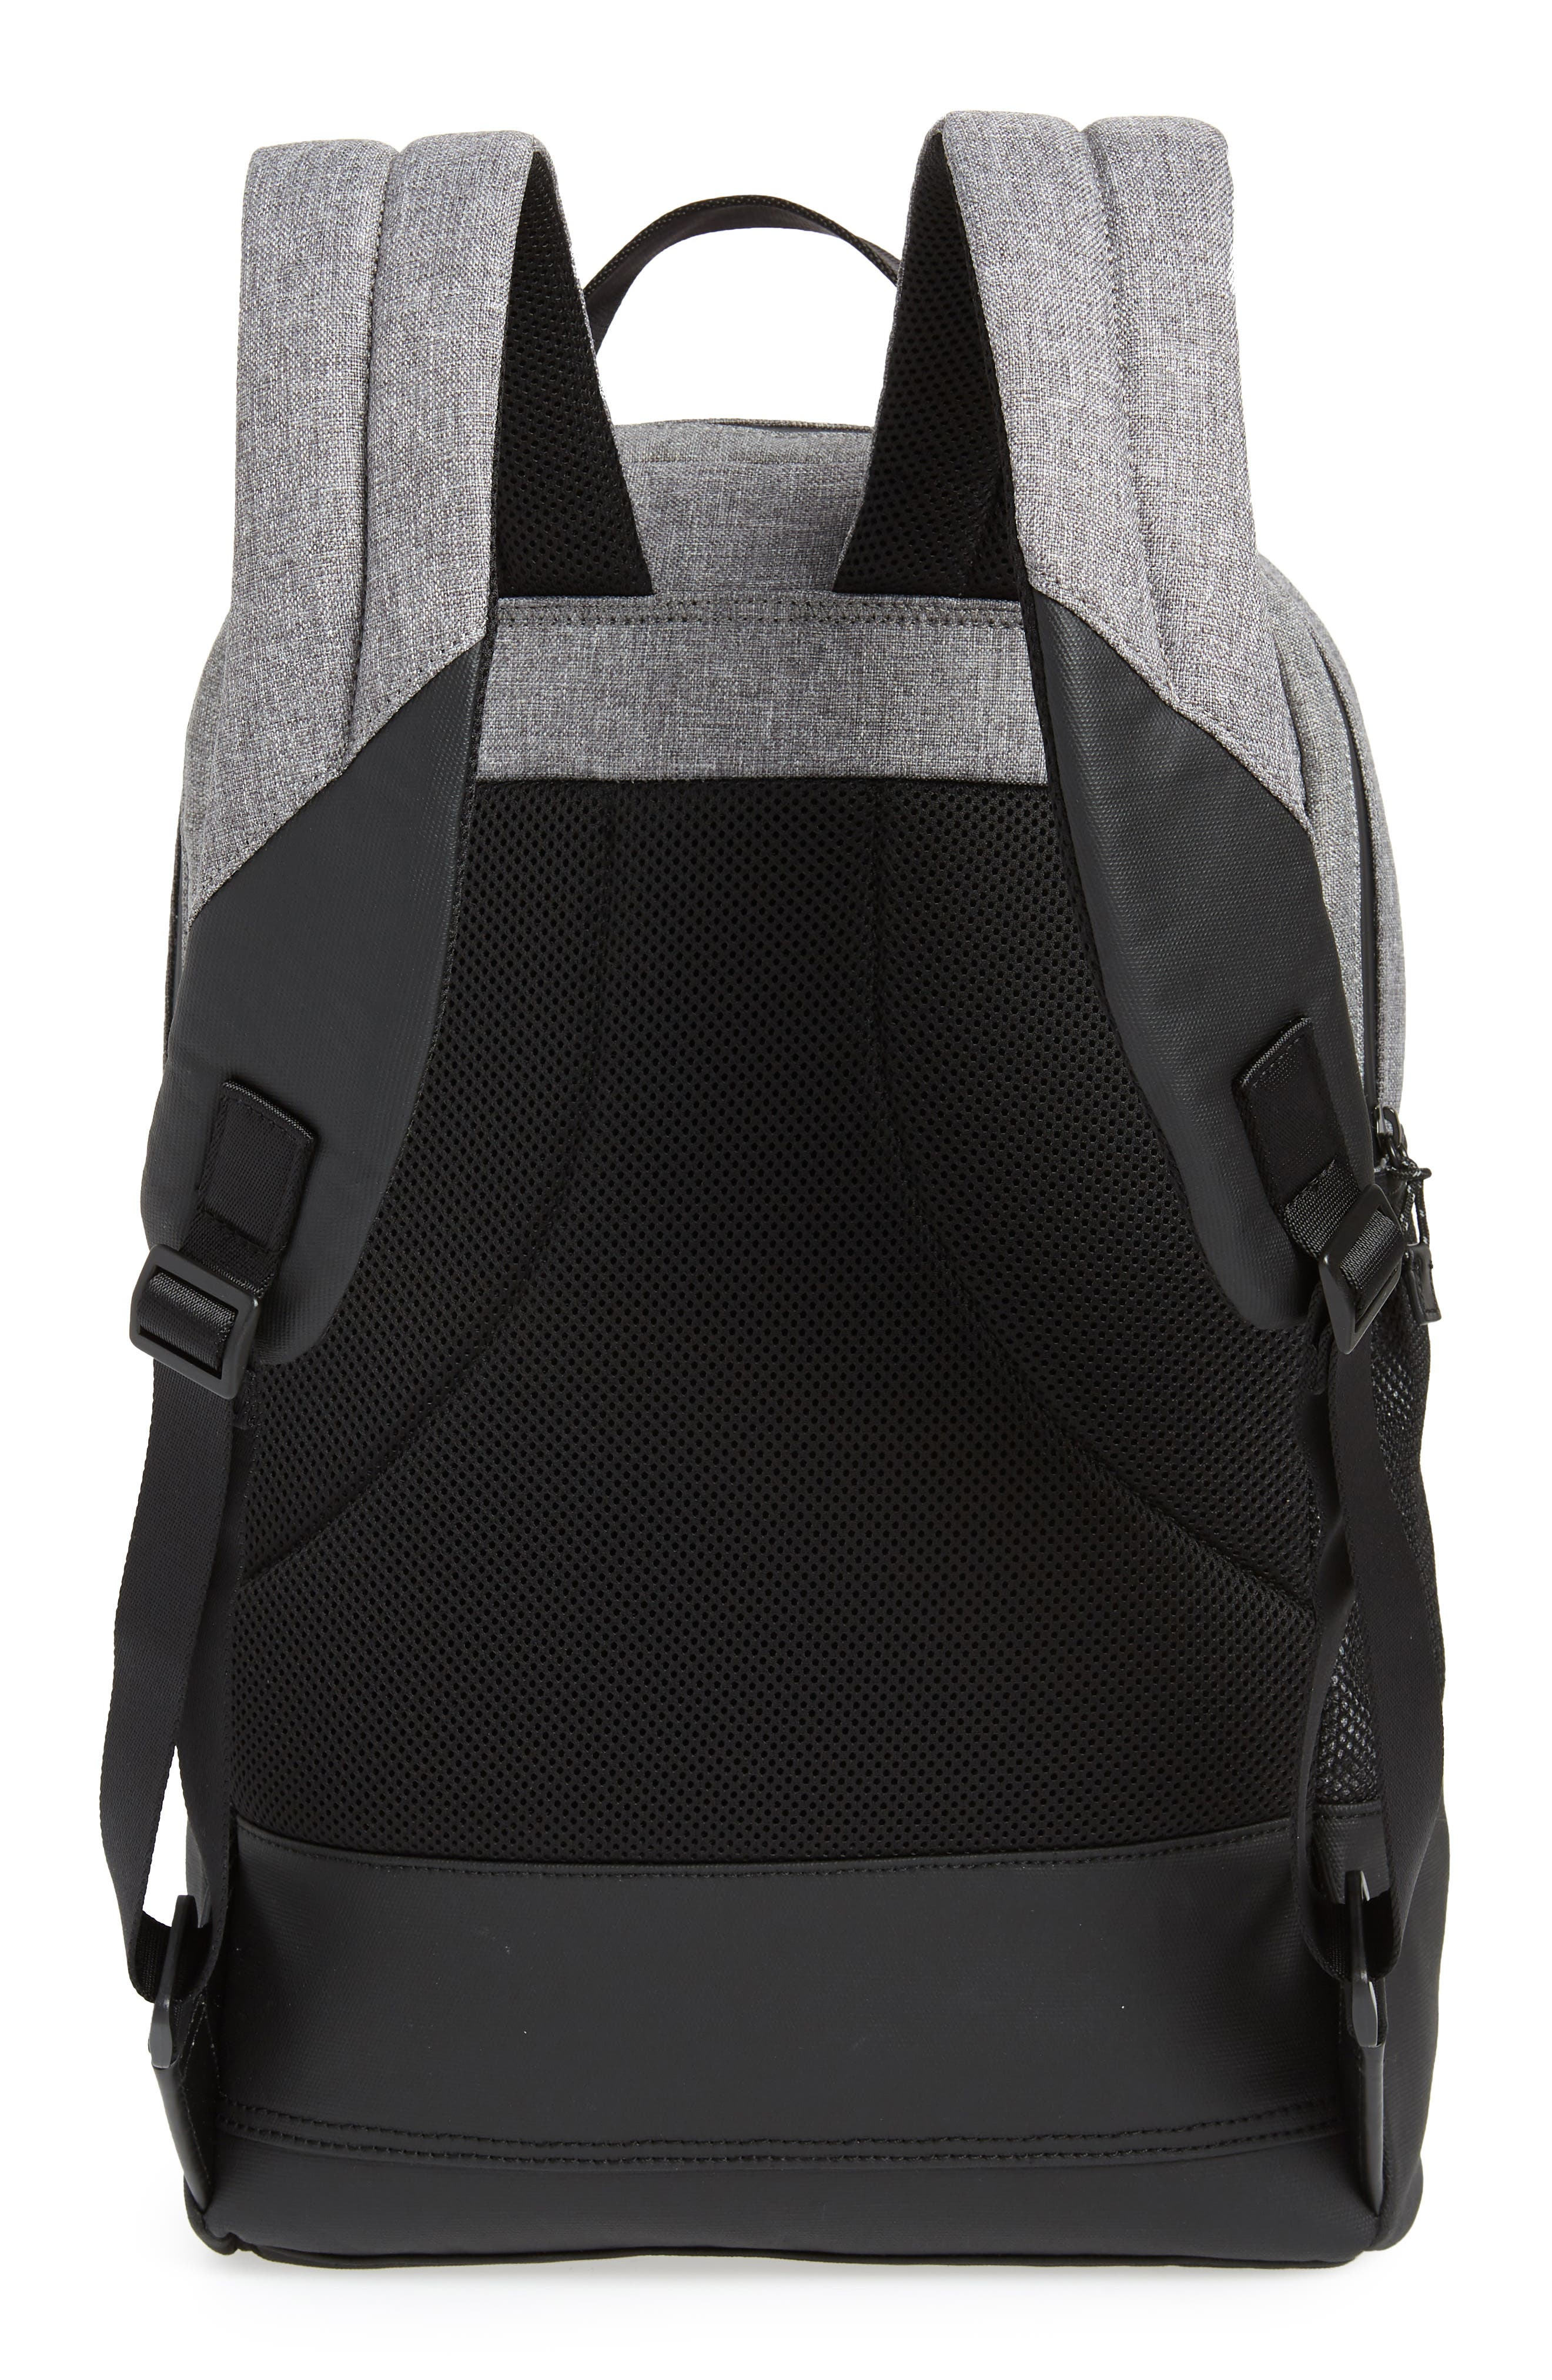 COLE HAAN, Sawyer Trail Backpack, Alternate thumbnail 3, color, HEATHERED GREY